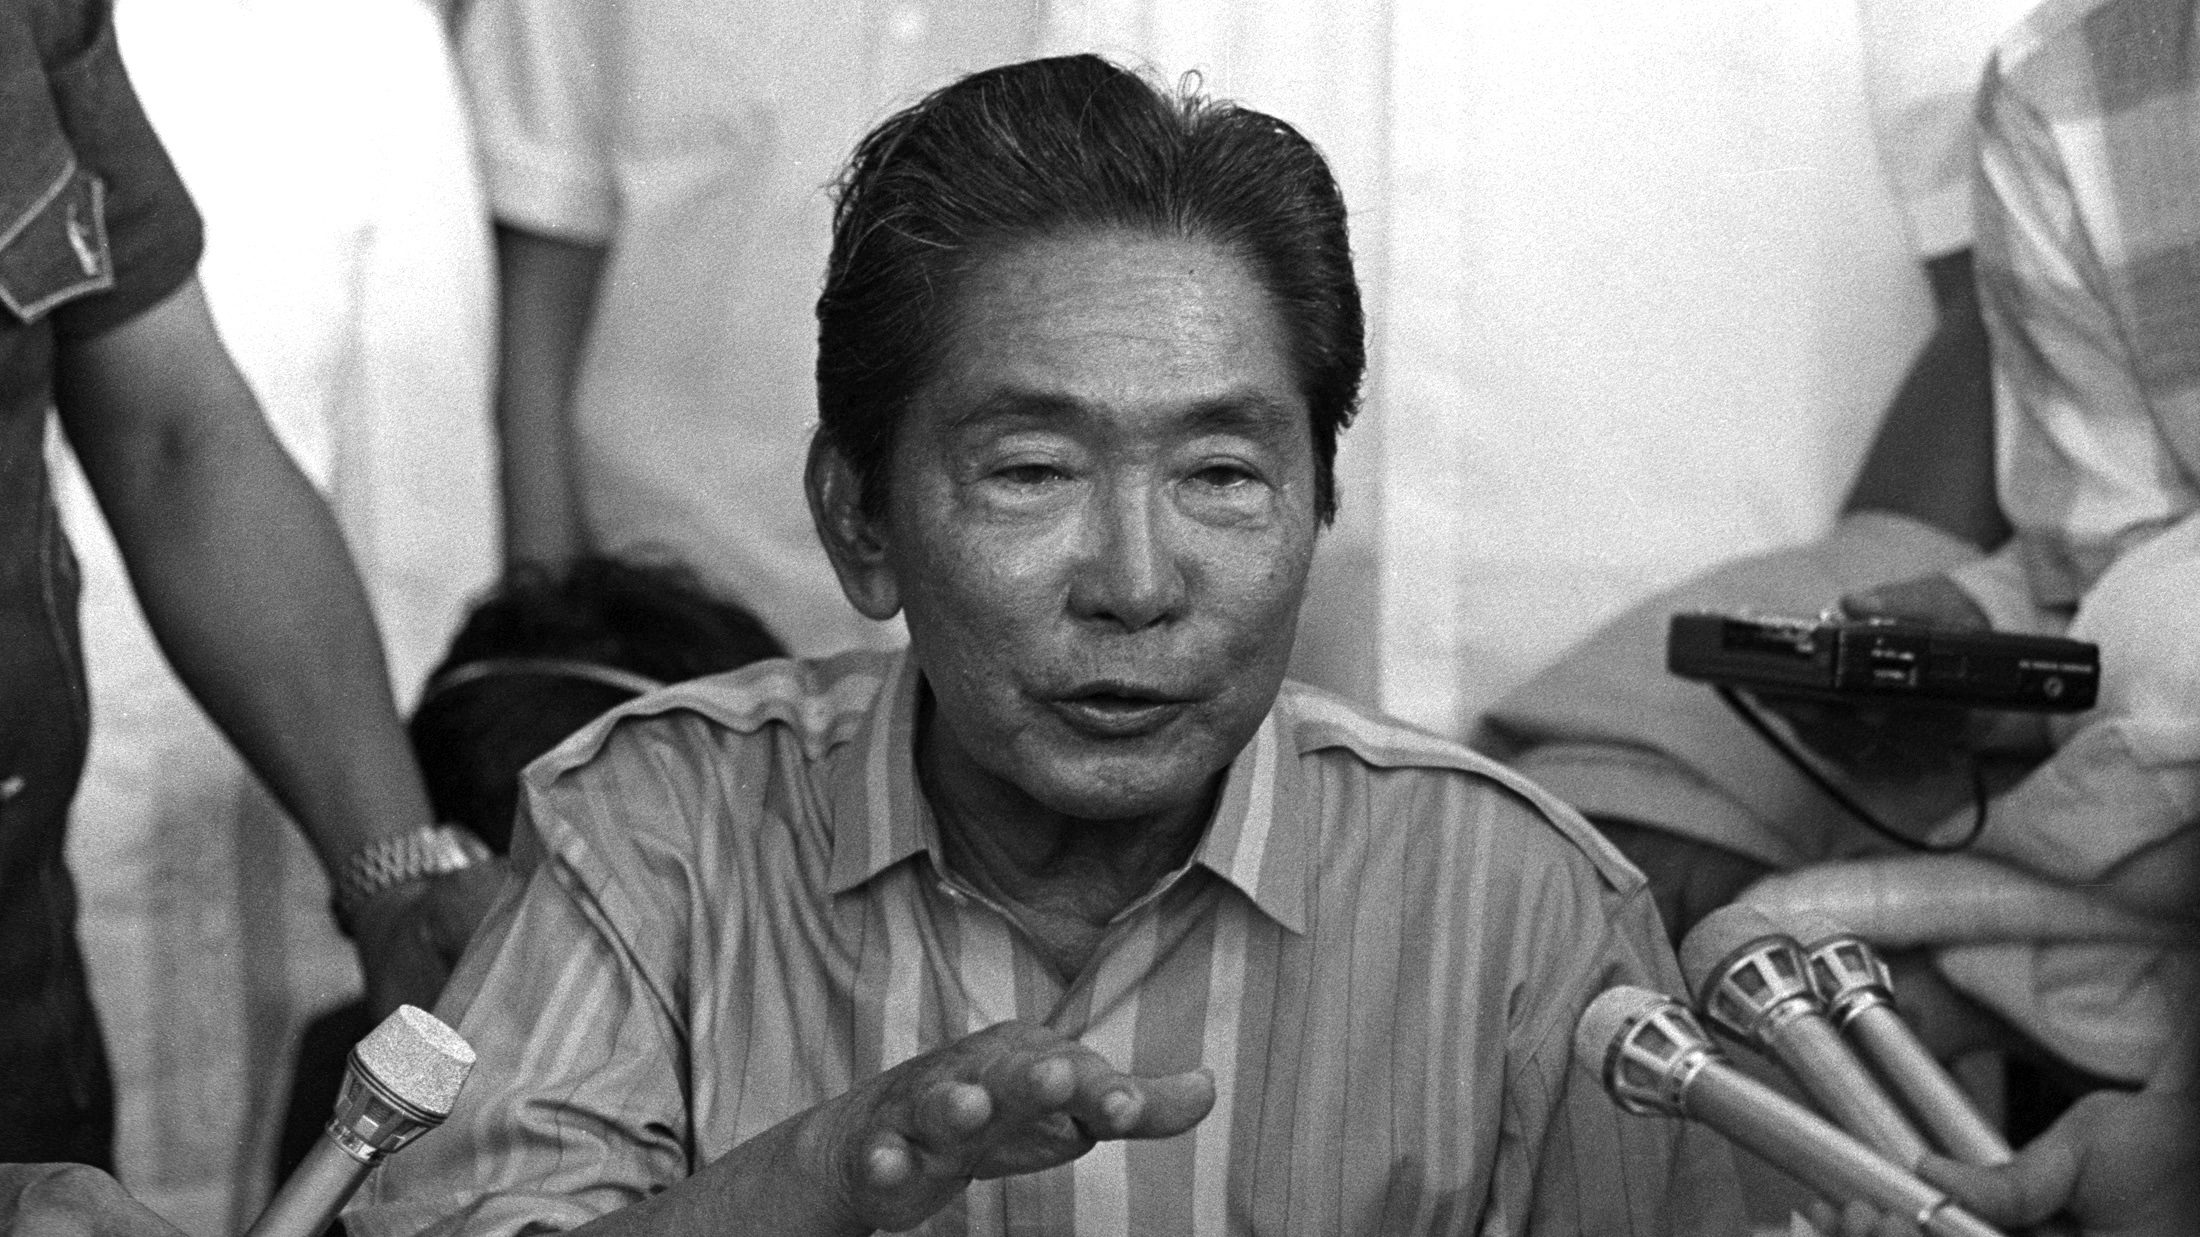 President Ferdinand Marcos talks to journalists during his campaign in his northern home province of Ilocos Norte, in Laoag, in the Philippines, December 17, 1985. Marcos denounced Corazon aquino for threatening to put him on trial if she is elected President in February's election. SCANNED FROM NEGATIVE. REUTERS/Willie Vicoy  CMC/PN - RTR2P